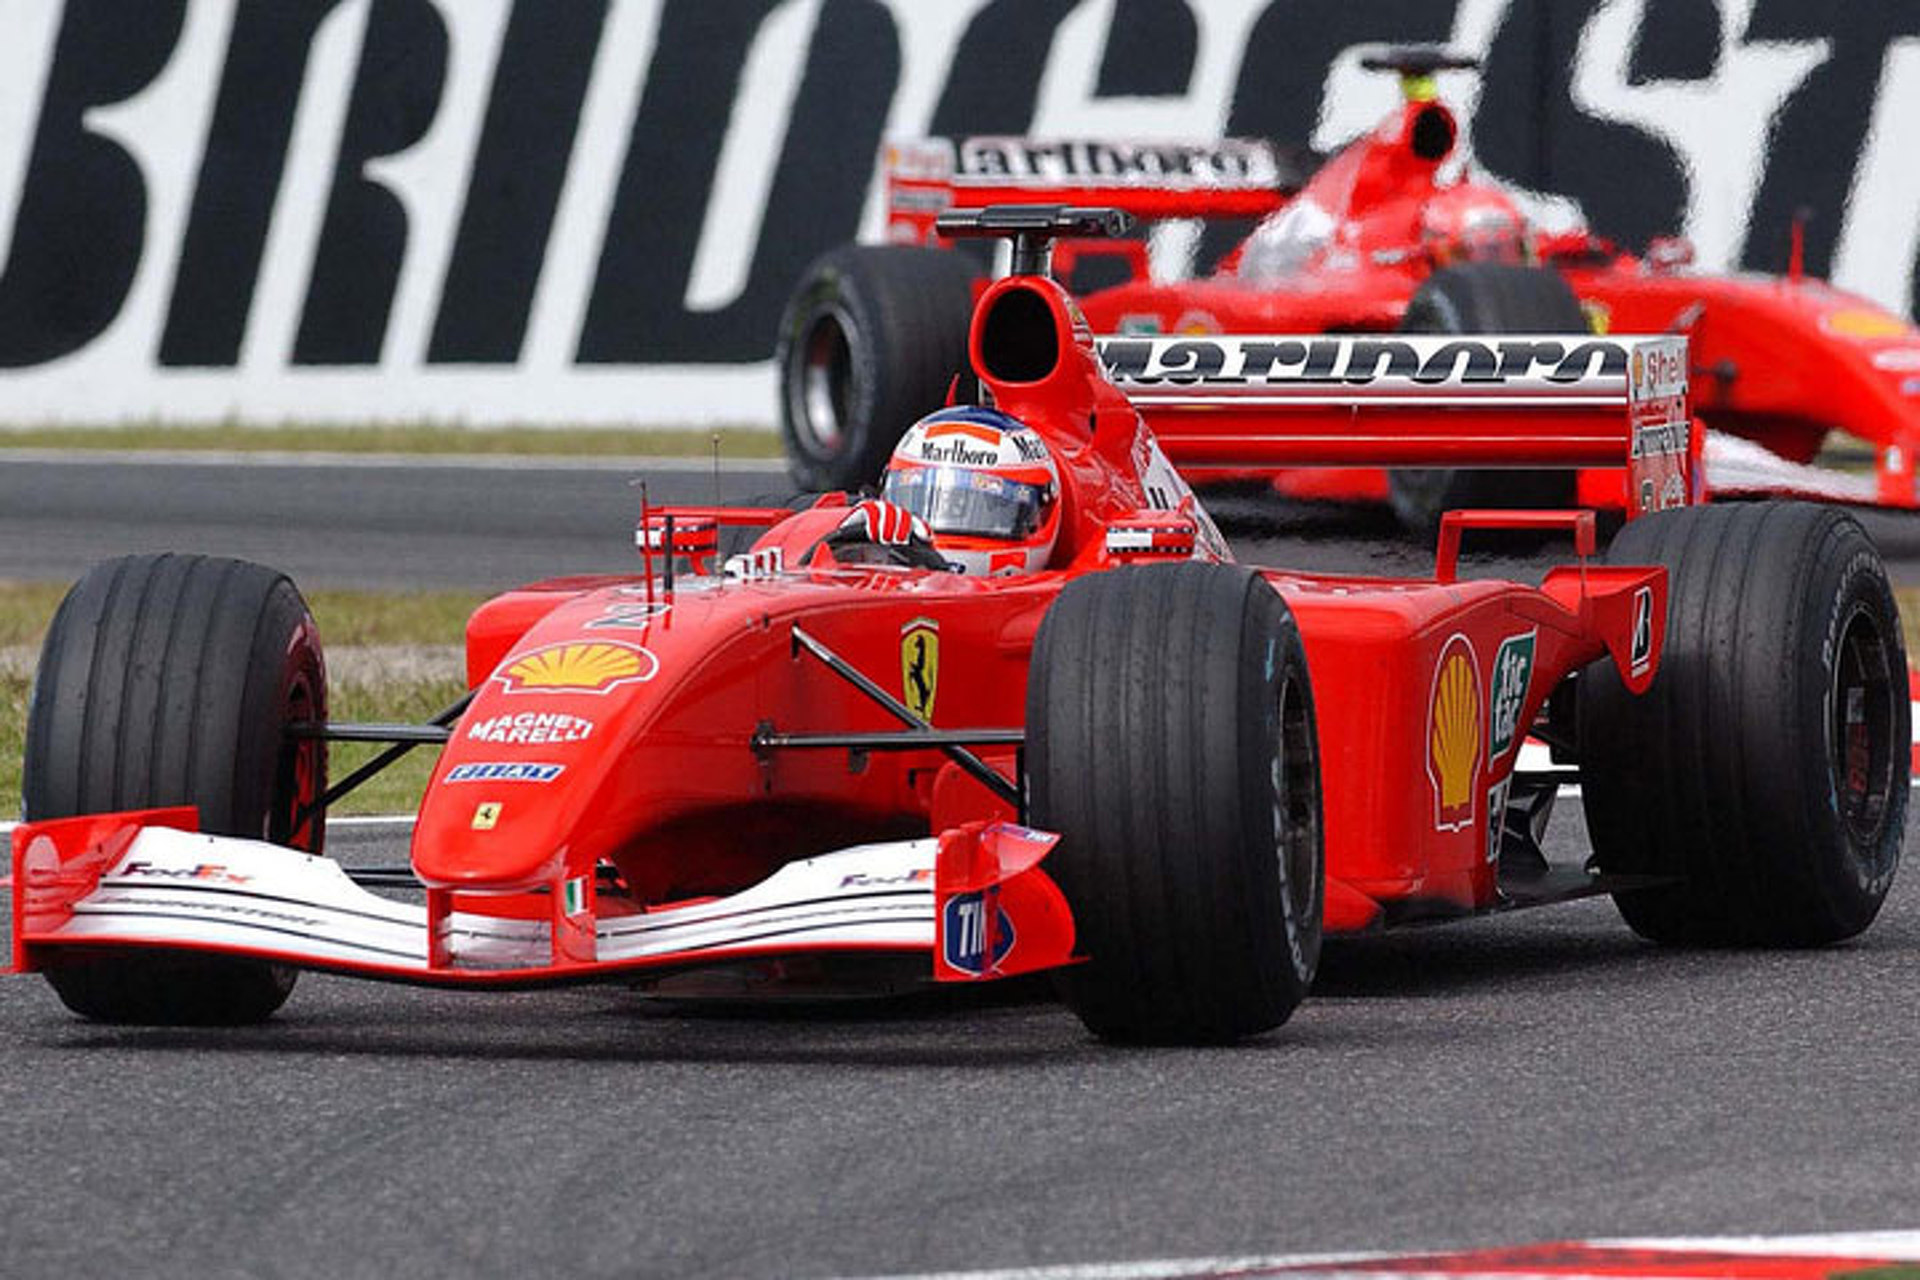 Up for Sale: Ferrari's 2001 Championship-Winning F1 Car